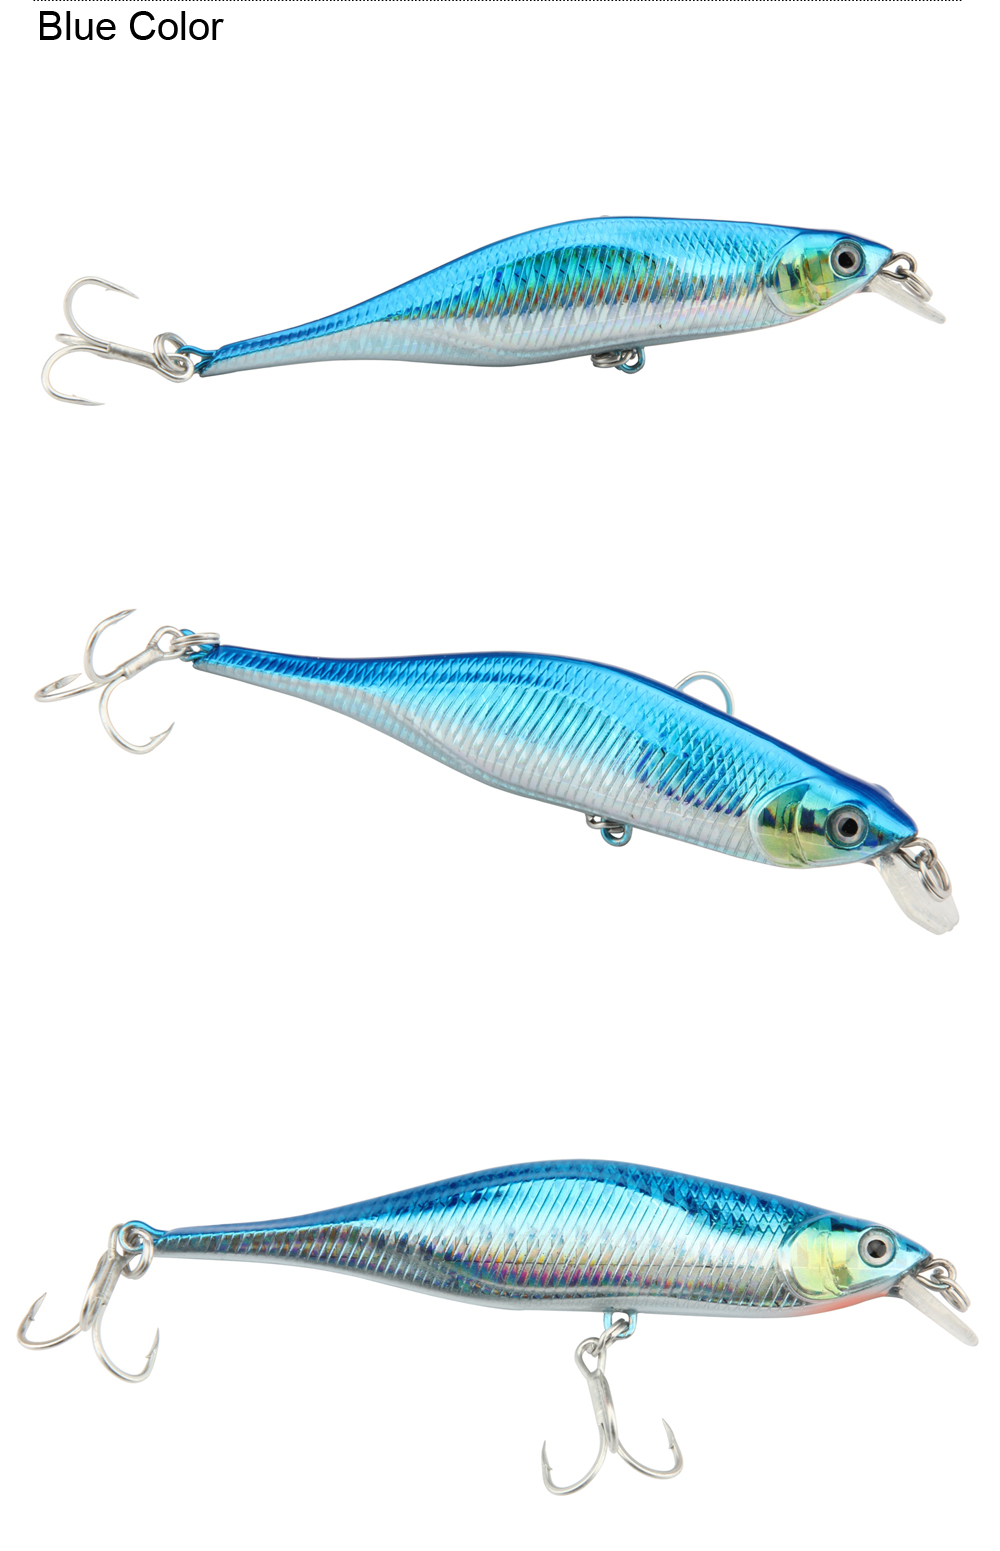 5pcsLot 11cm11g Mixed Colors ABS Minnow Fishing Lure Swimbait Crankbait Rigged With 2pcs High Carbon Steel Sharp Treble Hooks (6)